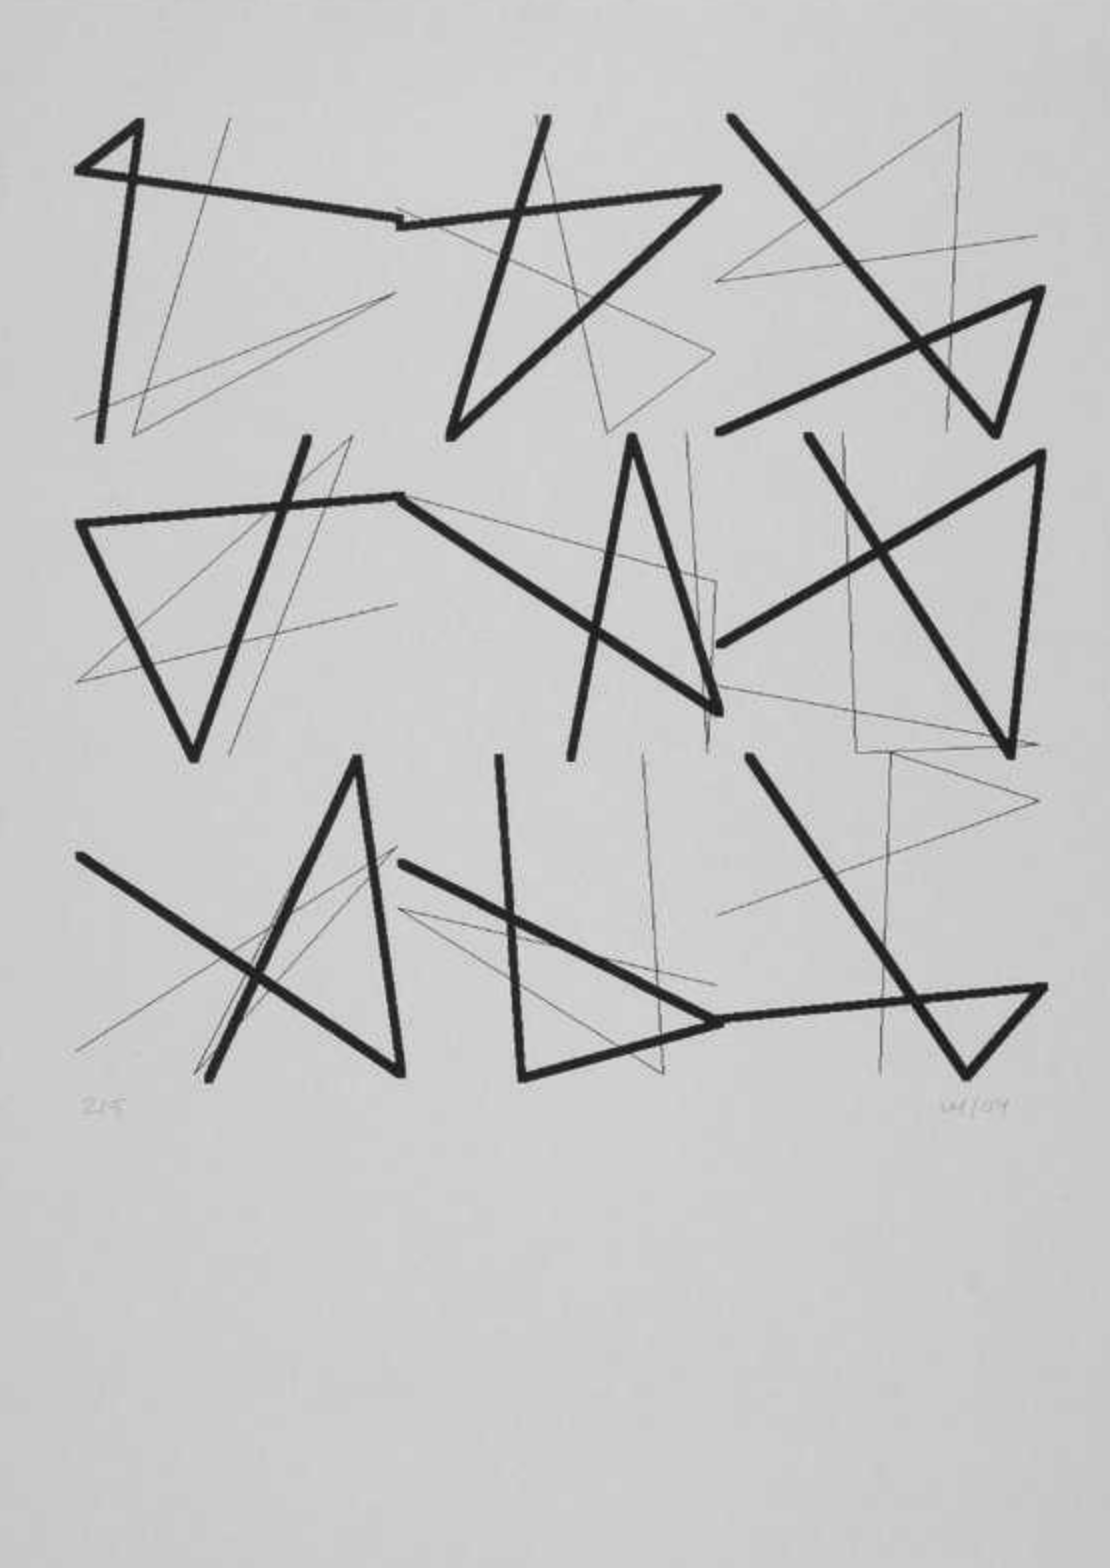 9 Doubles signes sans signification, 5 part, 2004 plotter drawing on grey paper,